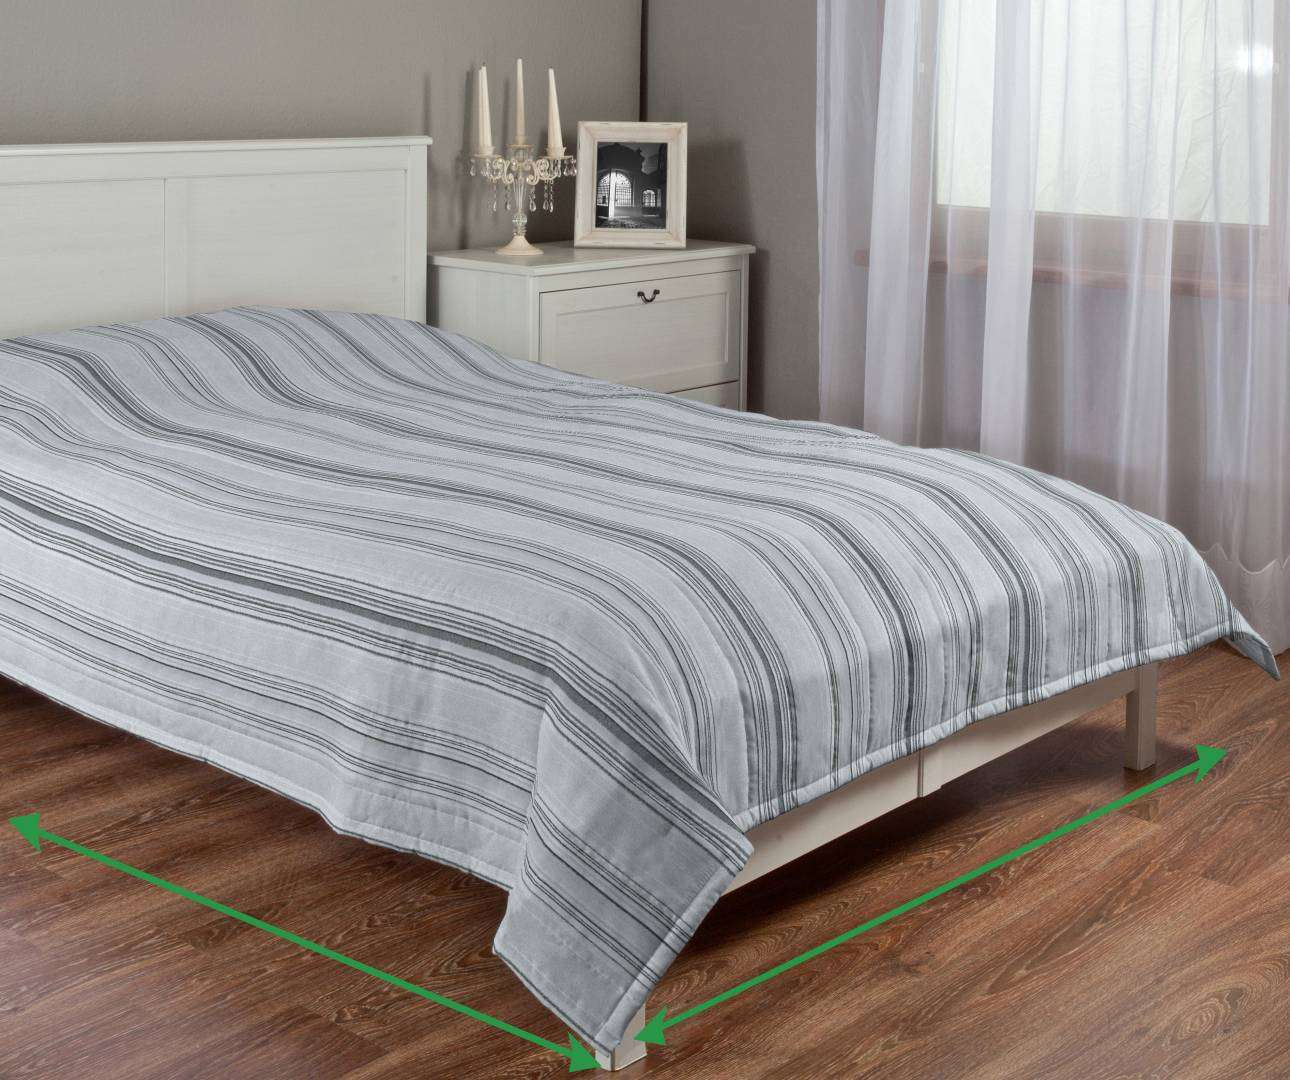 Quilted throw (vertical quilt pattern) in collection Rustica, fabric: 138-15